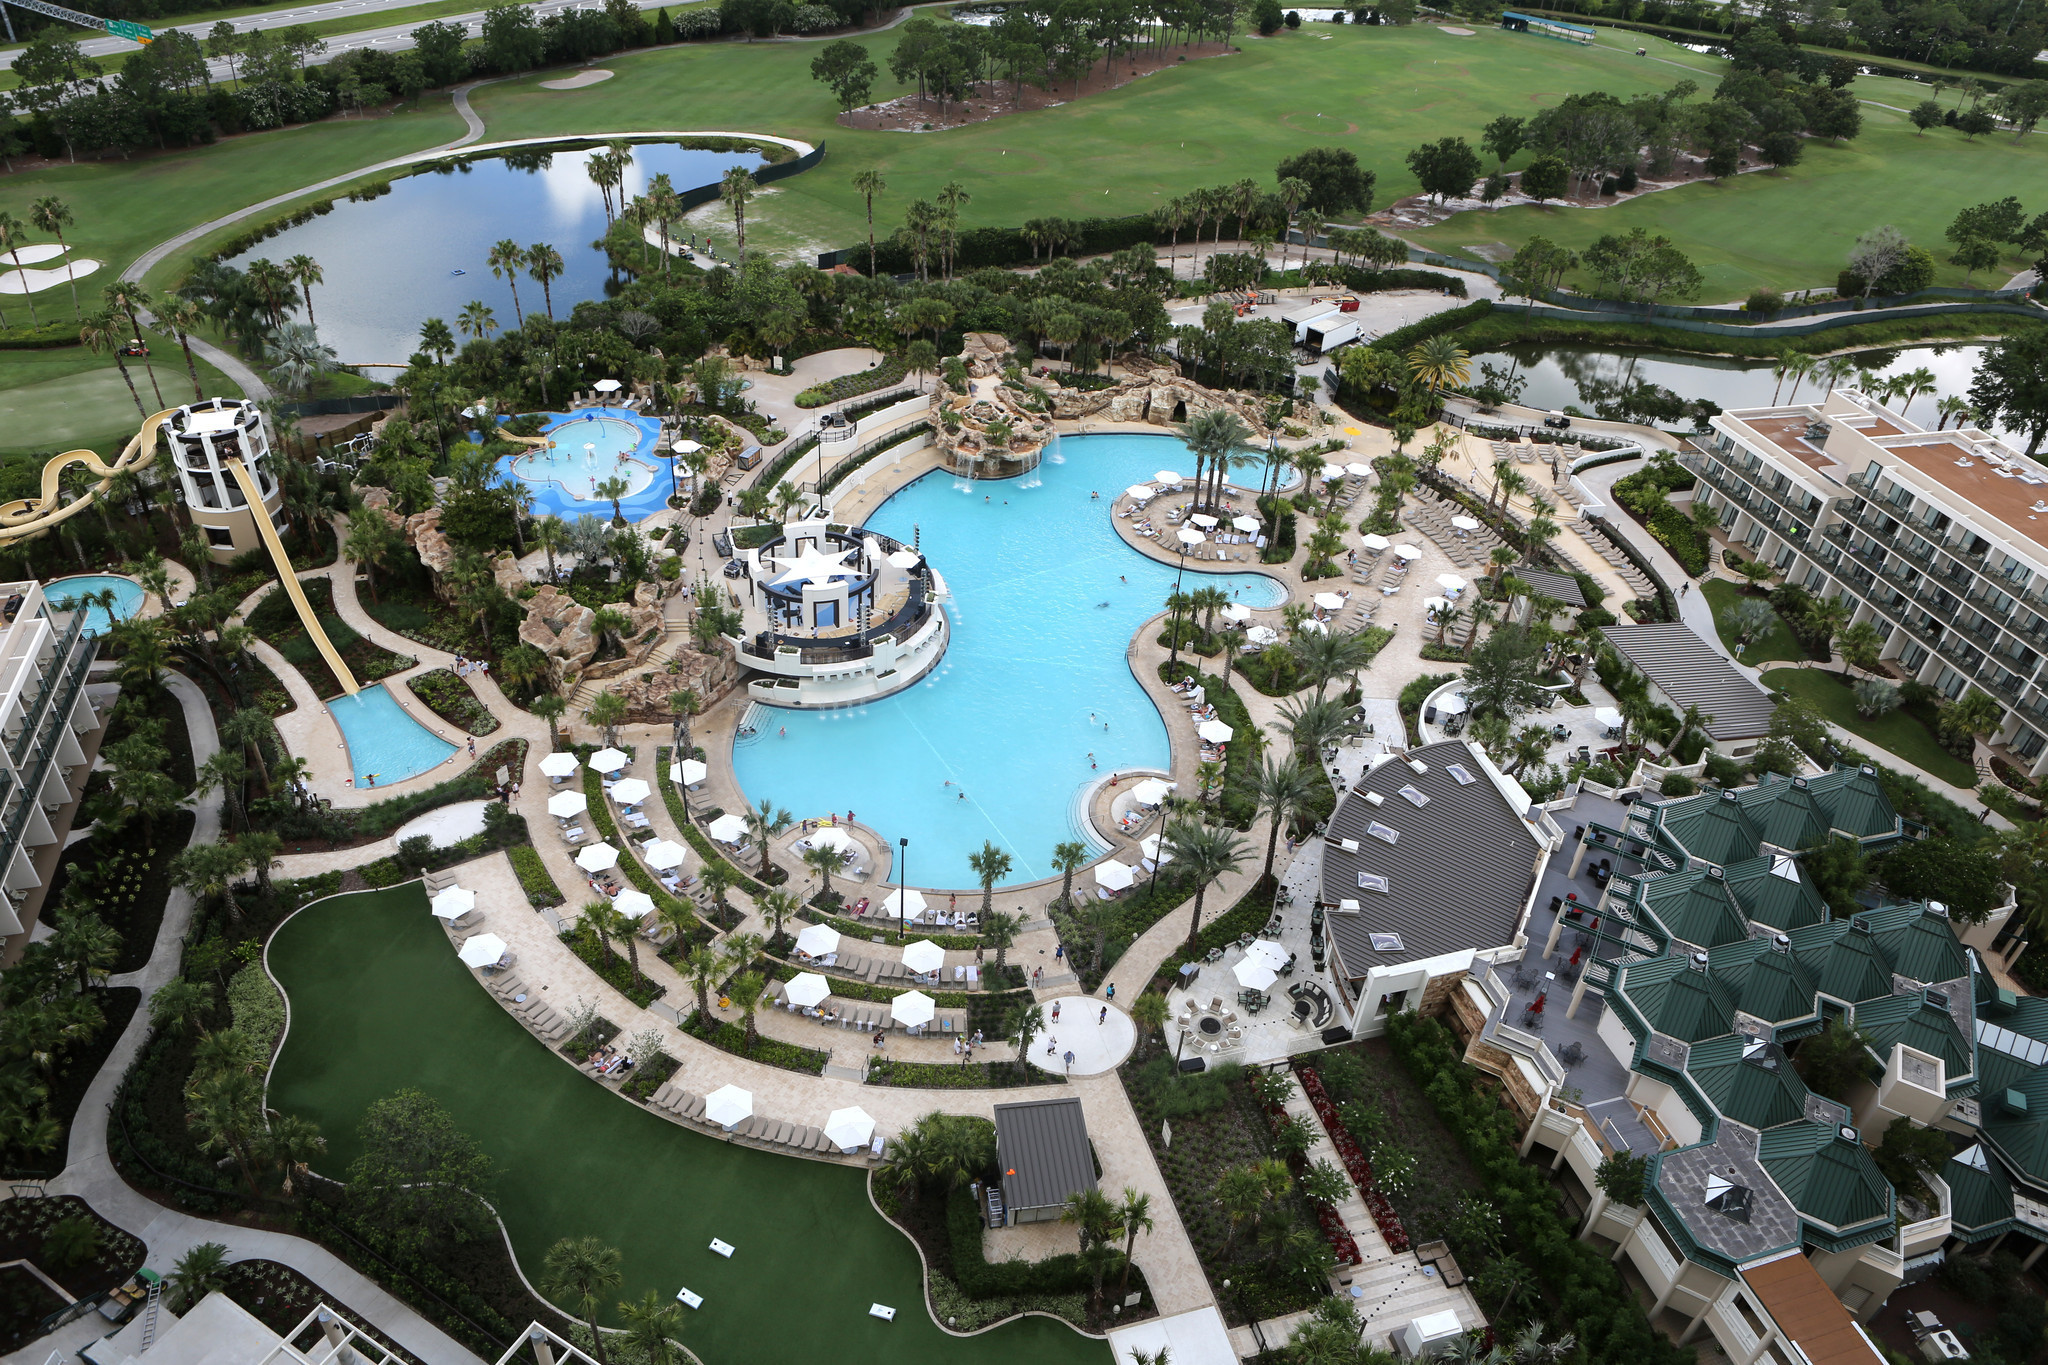 Marriott Offering Weekend Quot Winter Vention Quot In Orlando